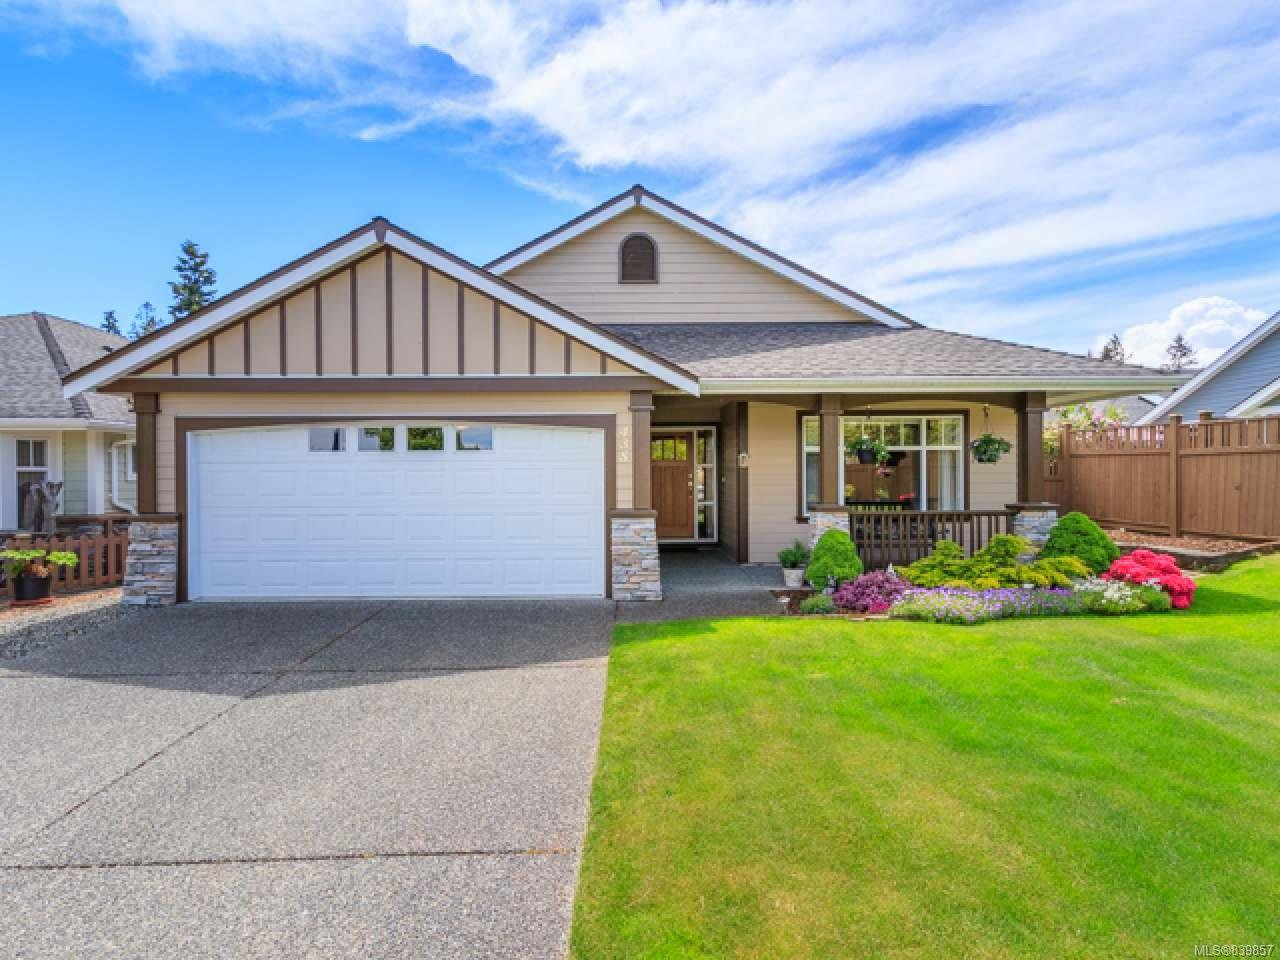 Main Photo: 435 Day Pl in PARKSVILLE: PQ Parksville House for sale (Parksville/Qualicum)  : MLS®# 839857